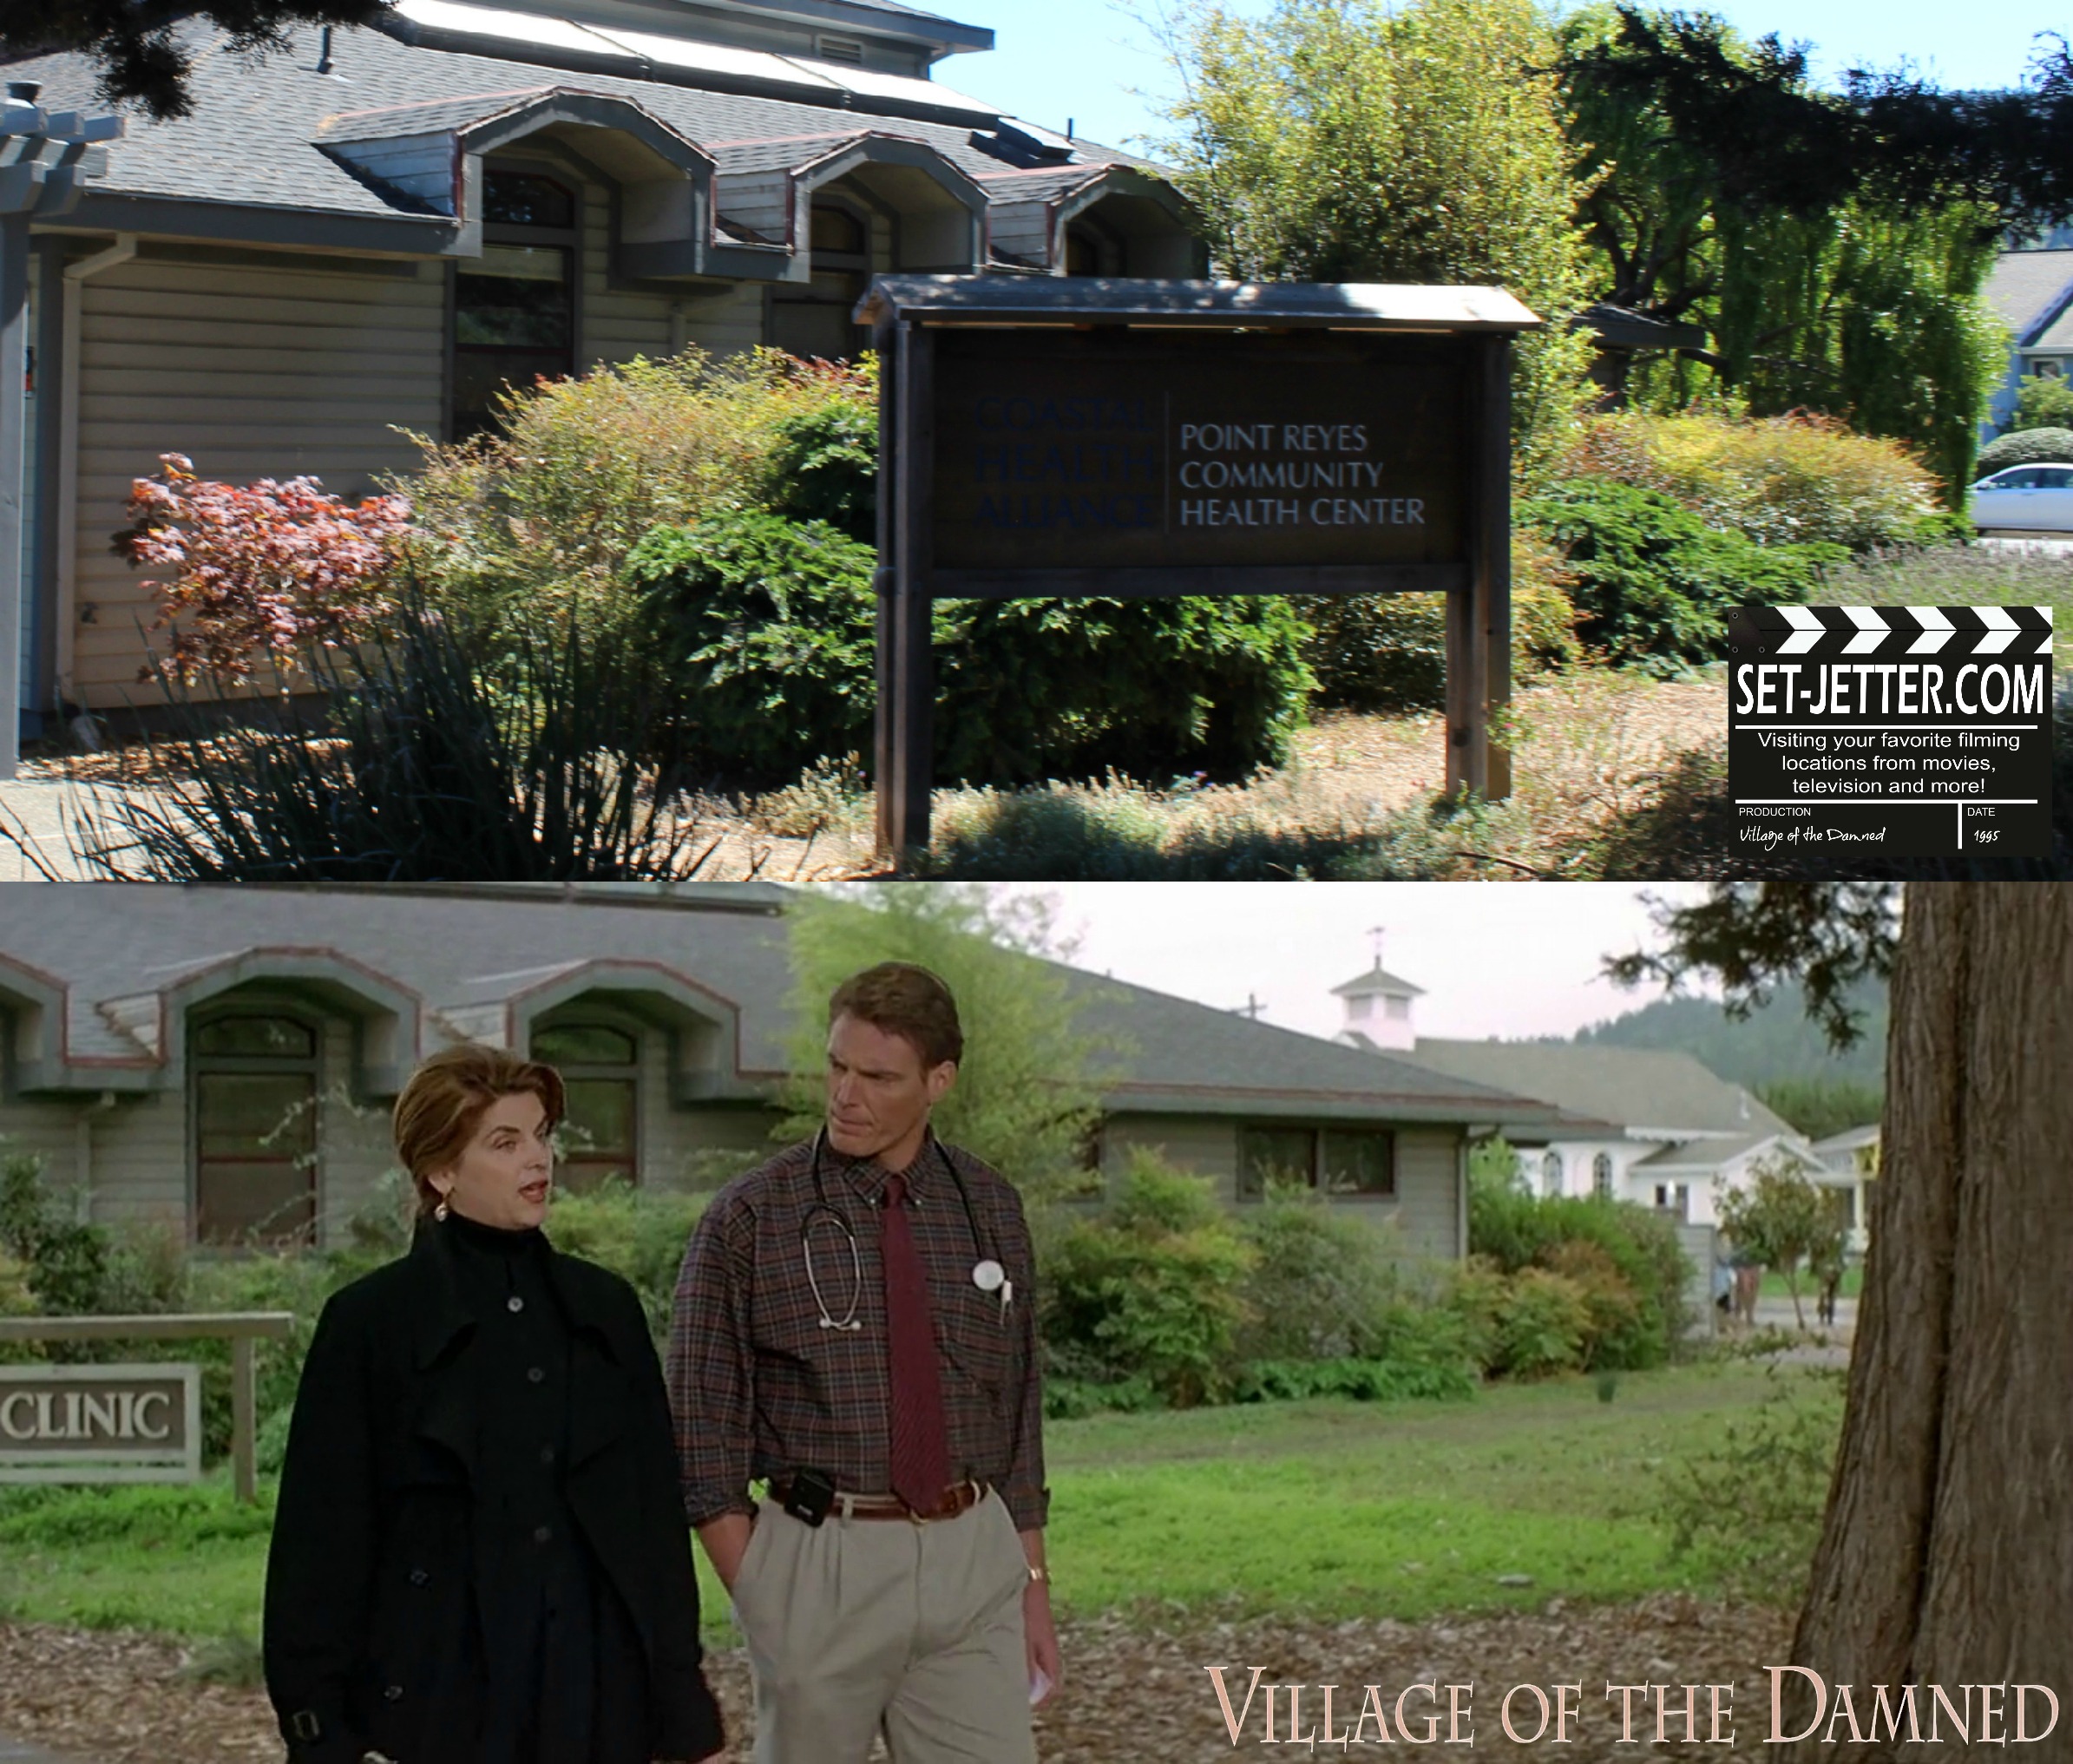 Village of the Damned comparison 121.jpg